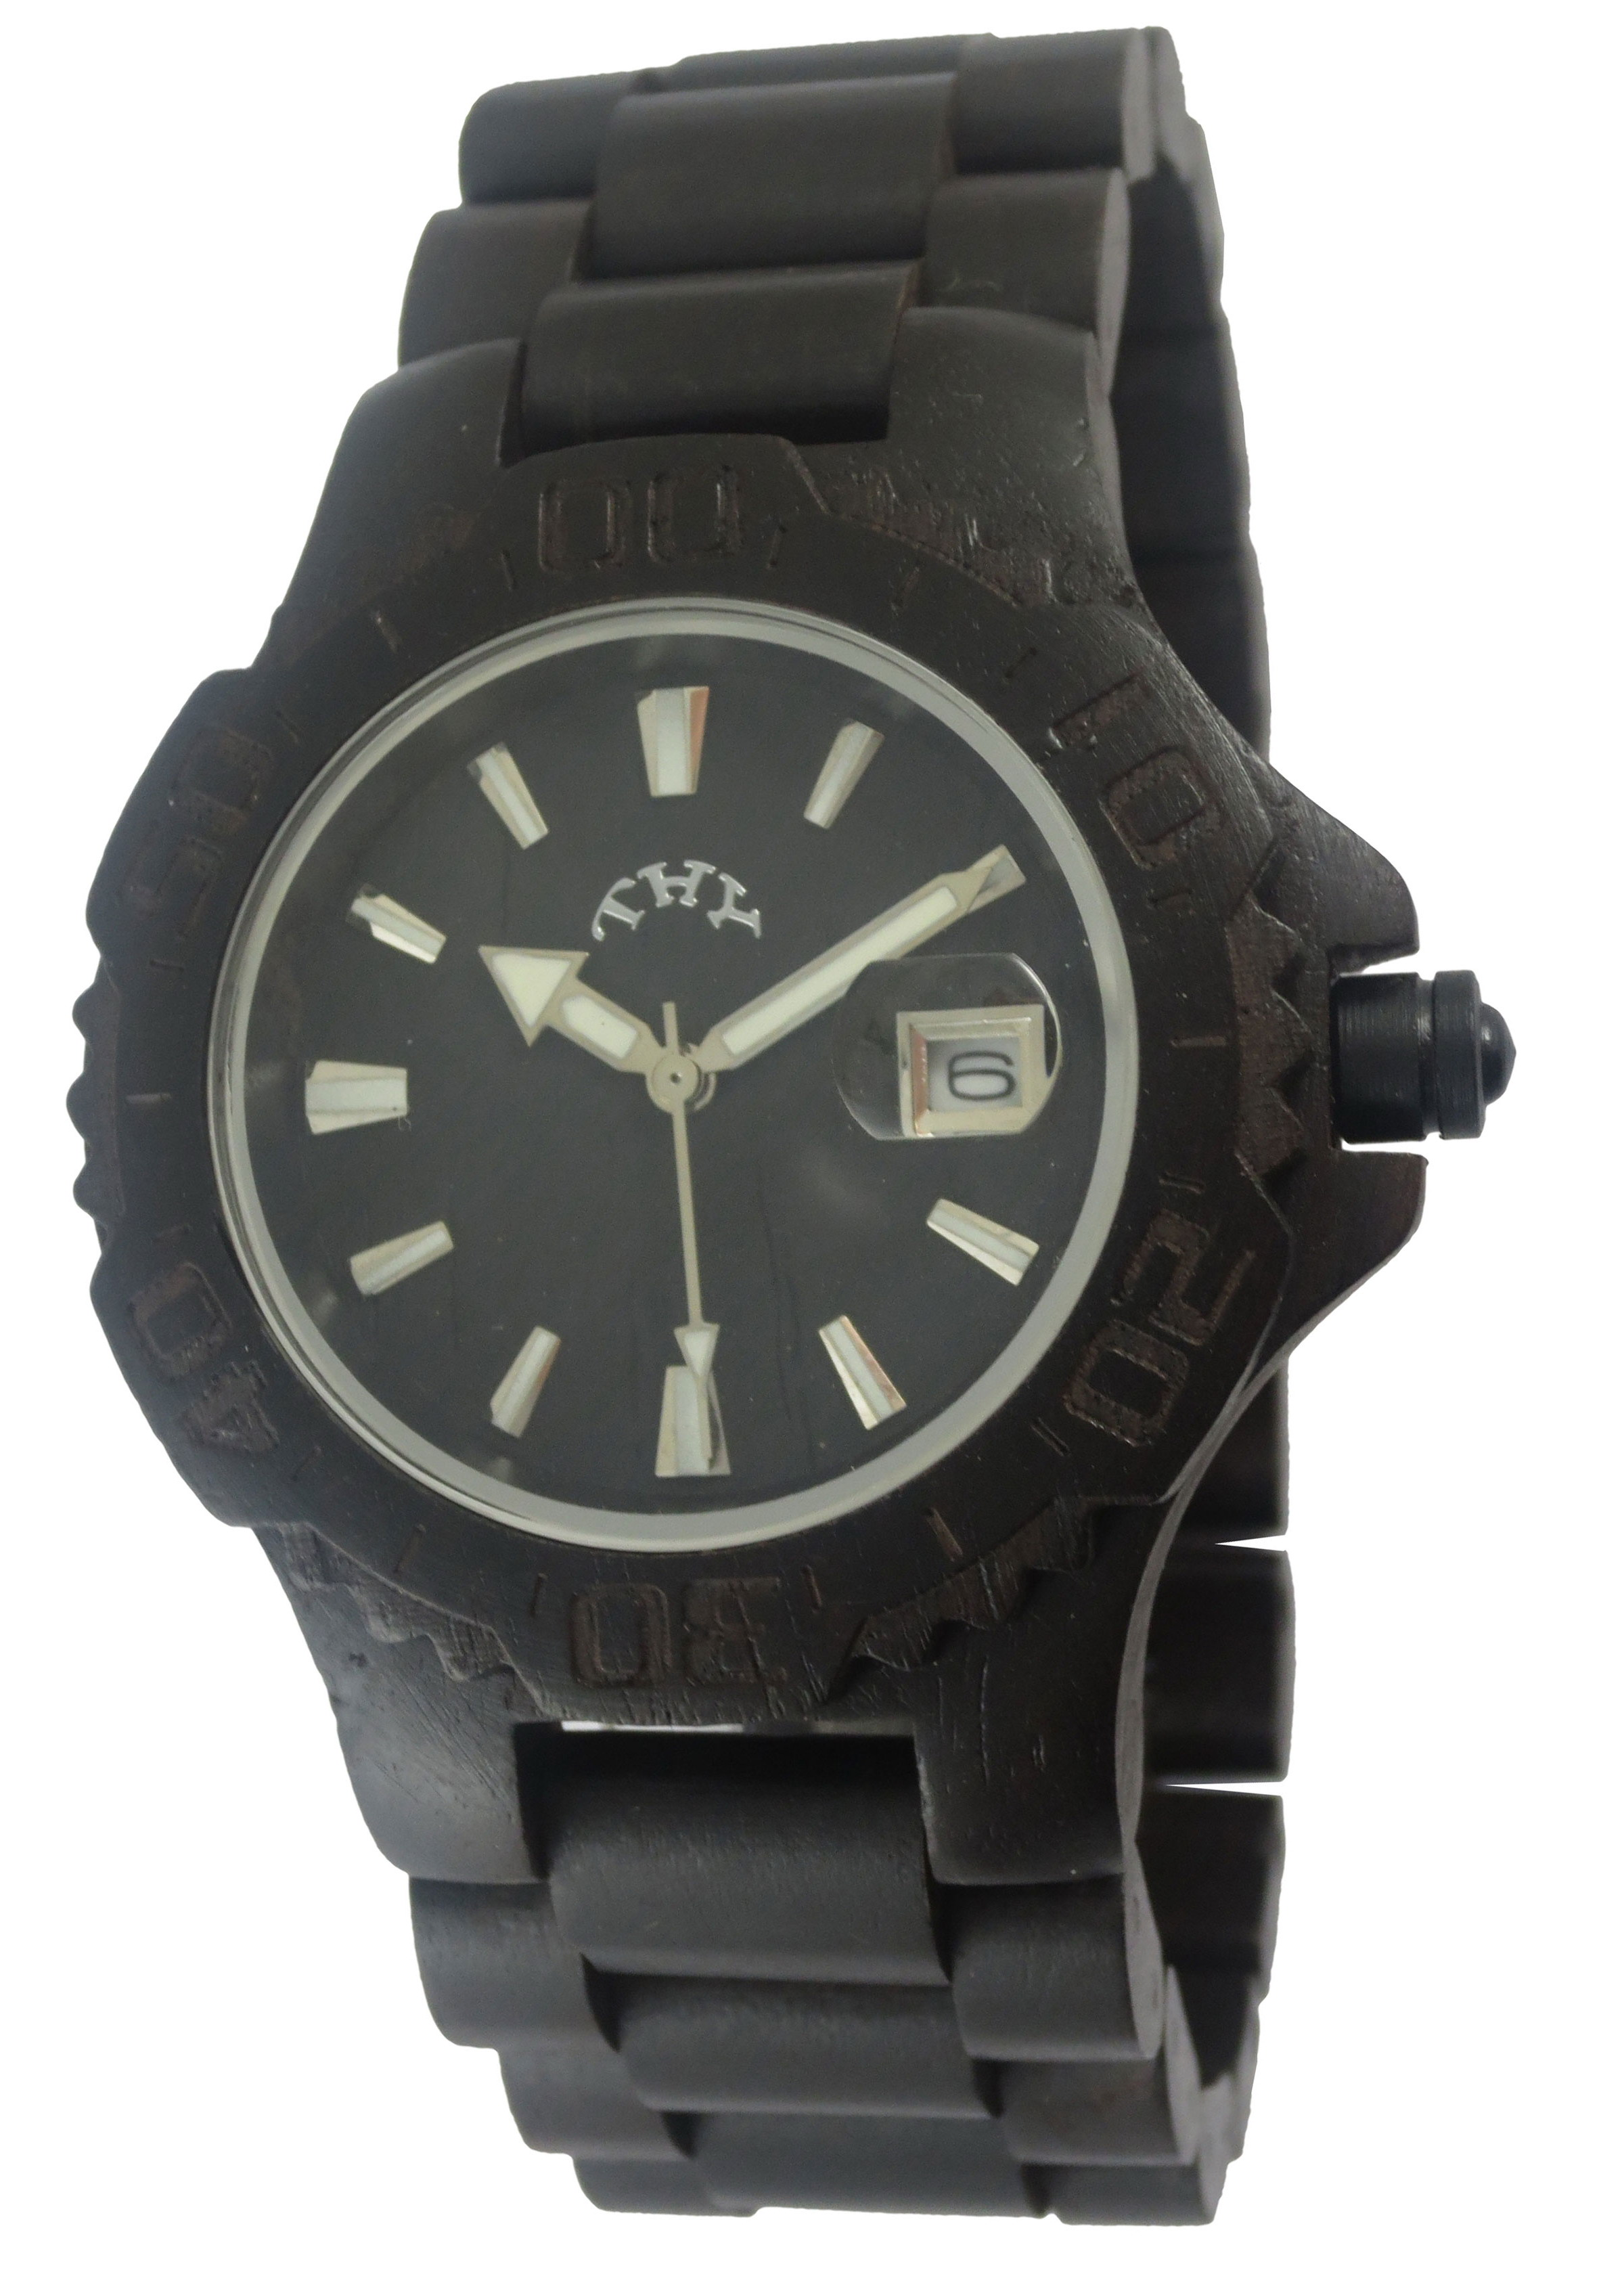 Men's Black Round Black Dial Wooden Watches with 40 Mm Size W00006